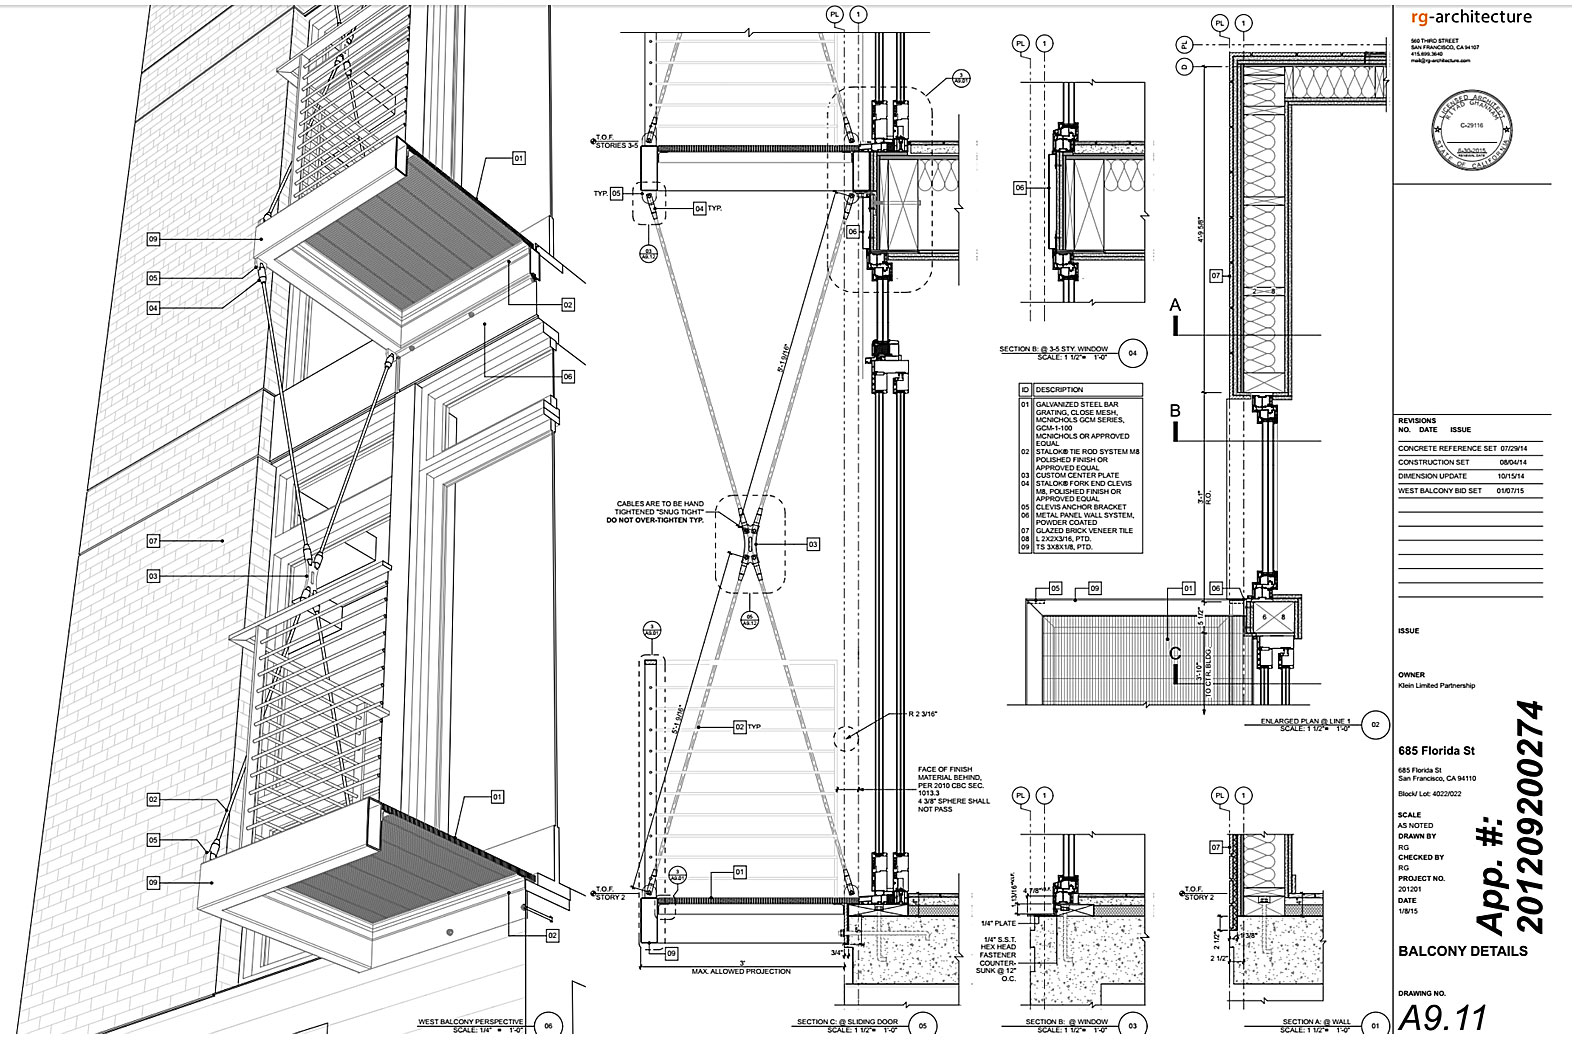 685-Florida-St-Facade-Details-Drawing